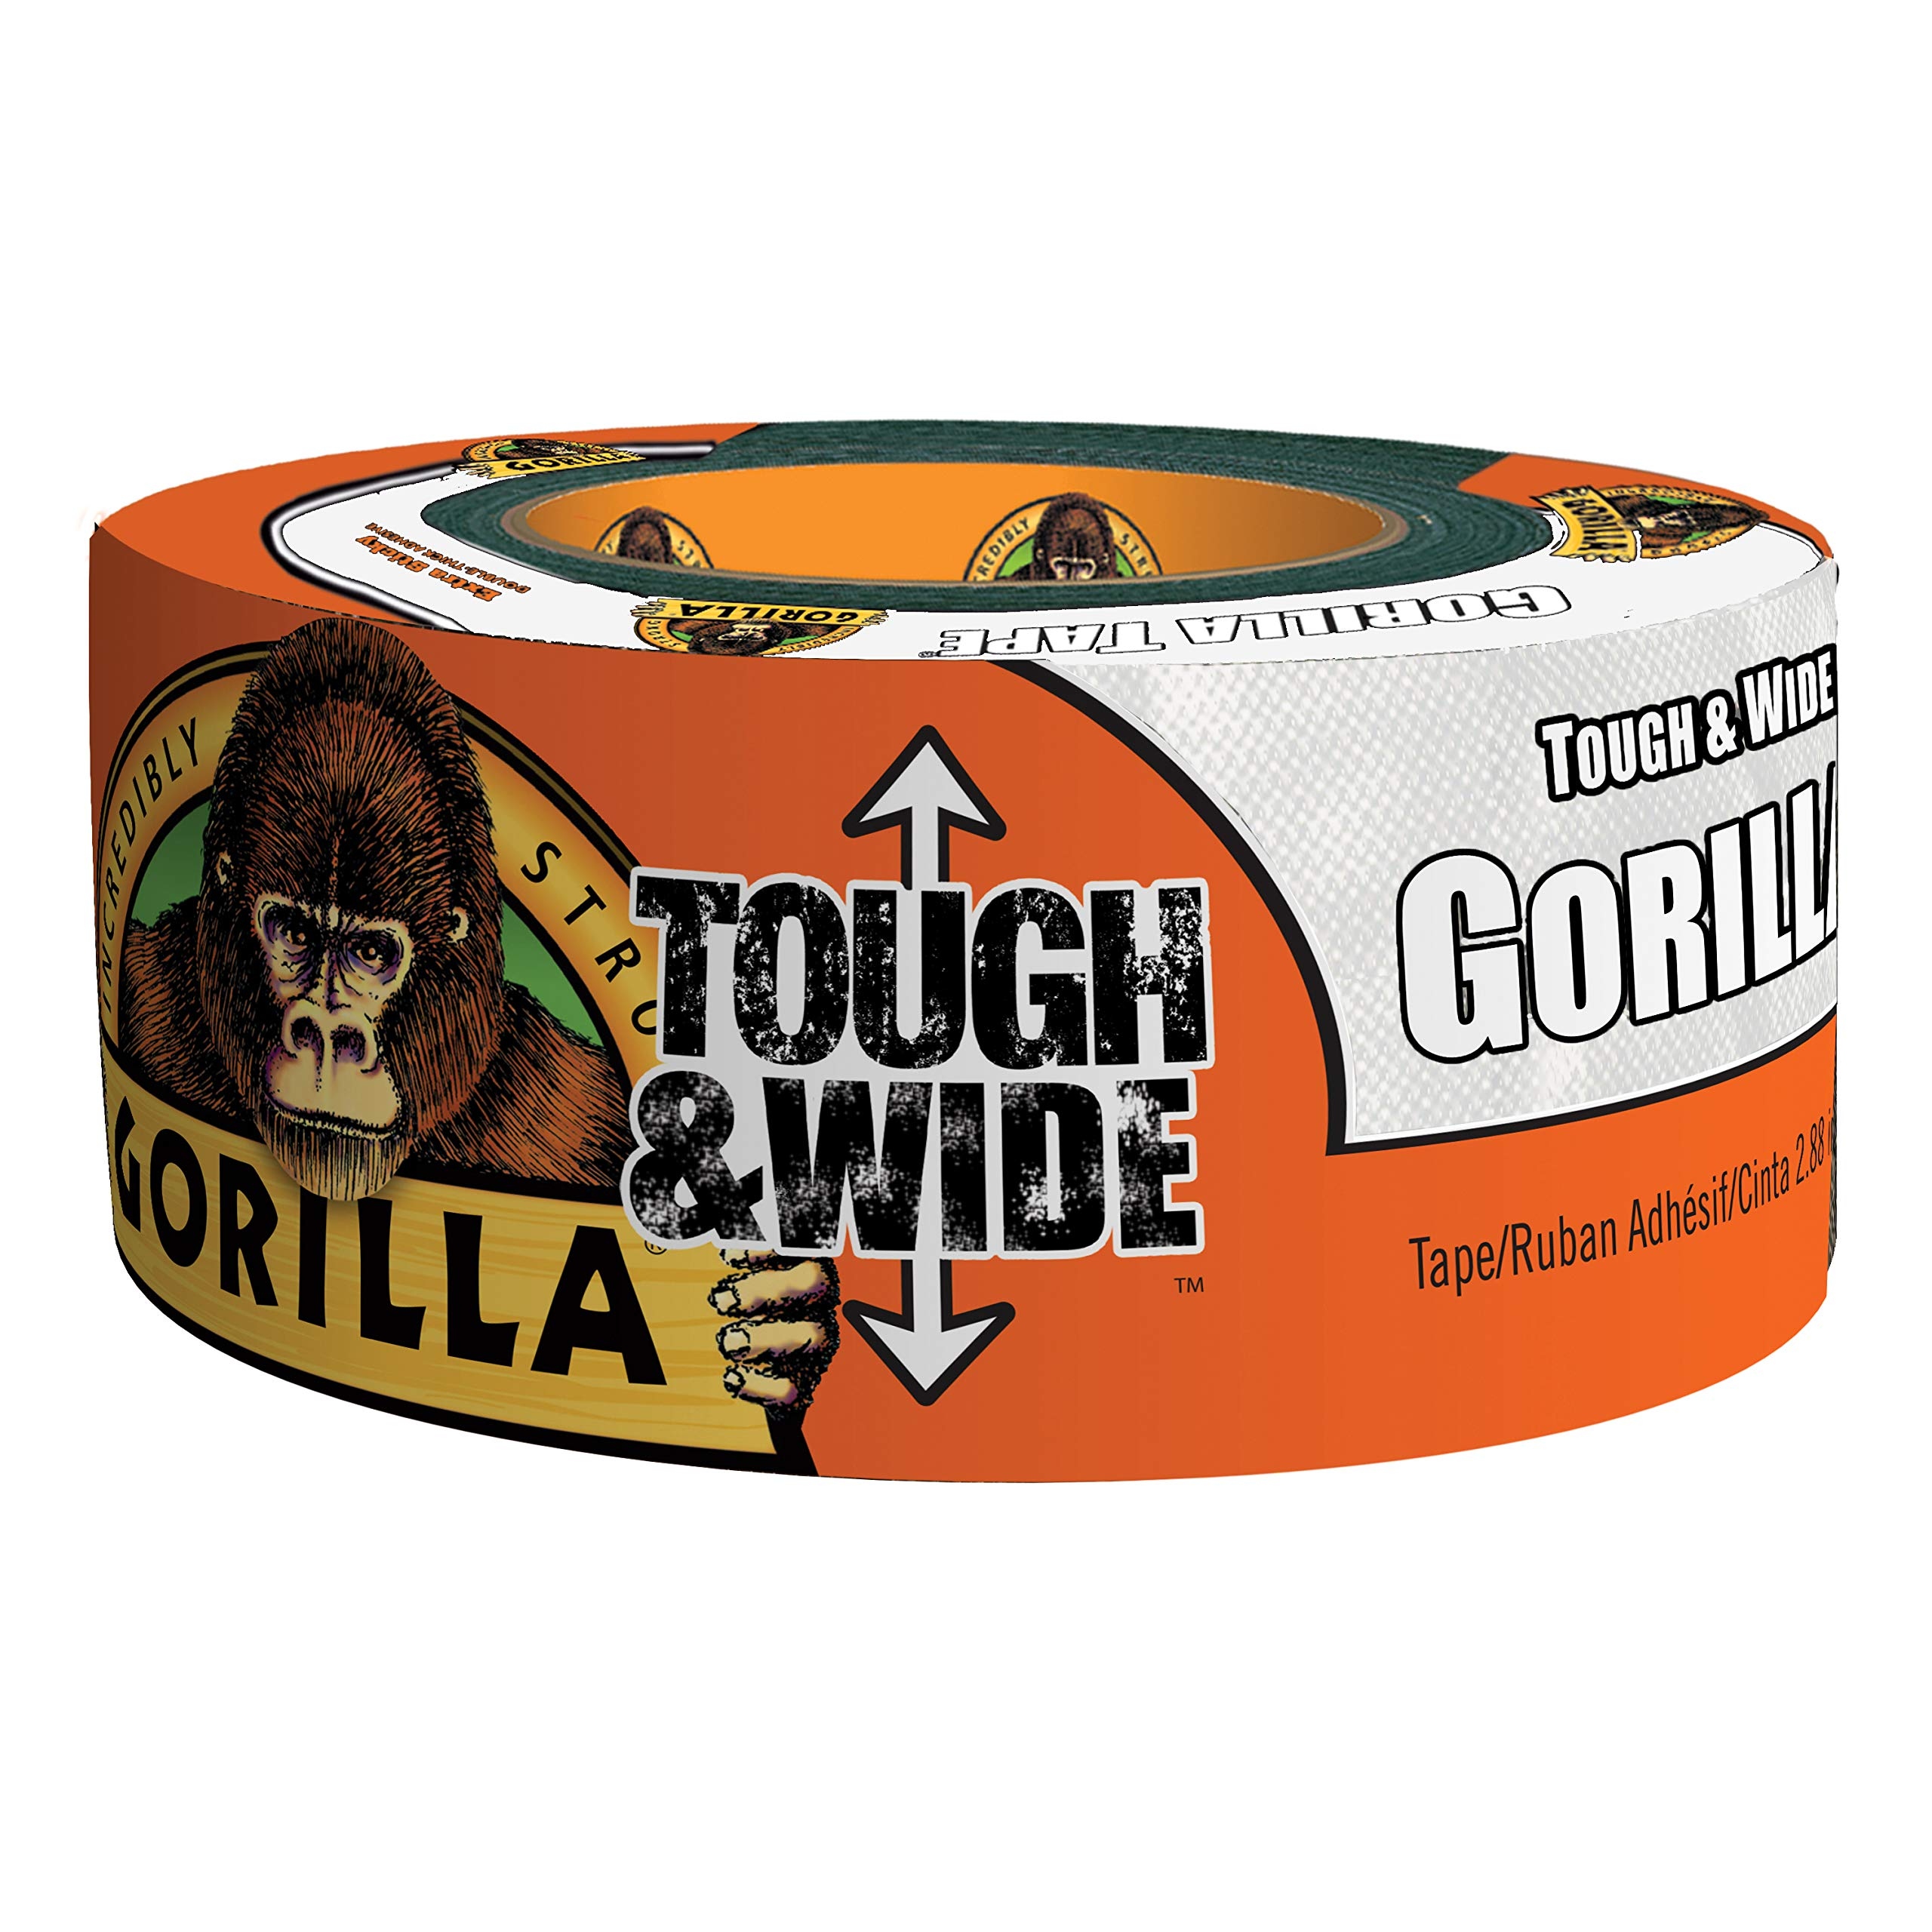 Gorilla 6025302DF Tough & Wide Duct Tape, 4-Pack, White by Gorilla